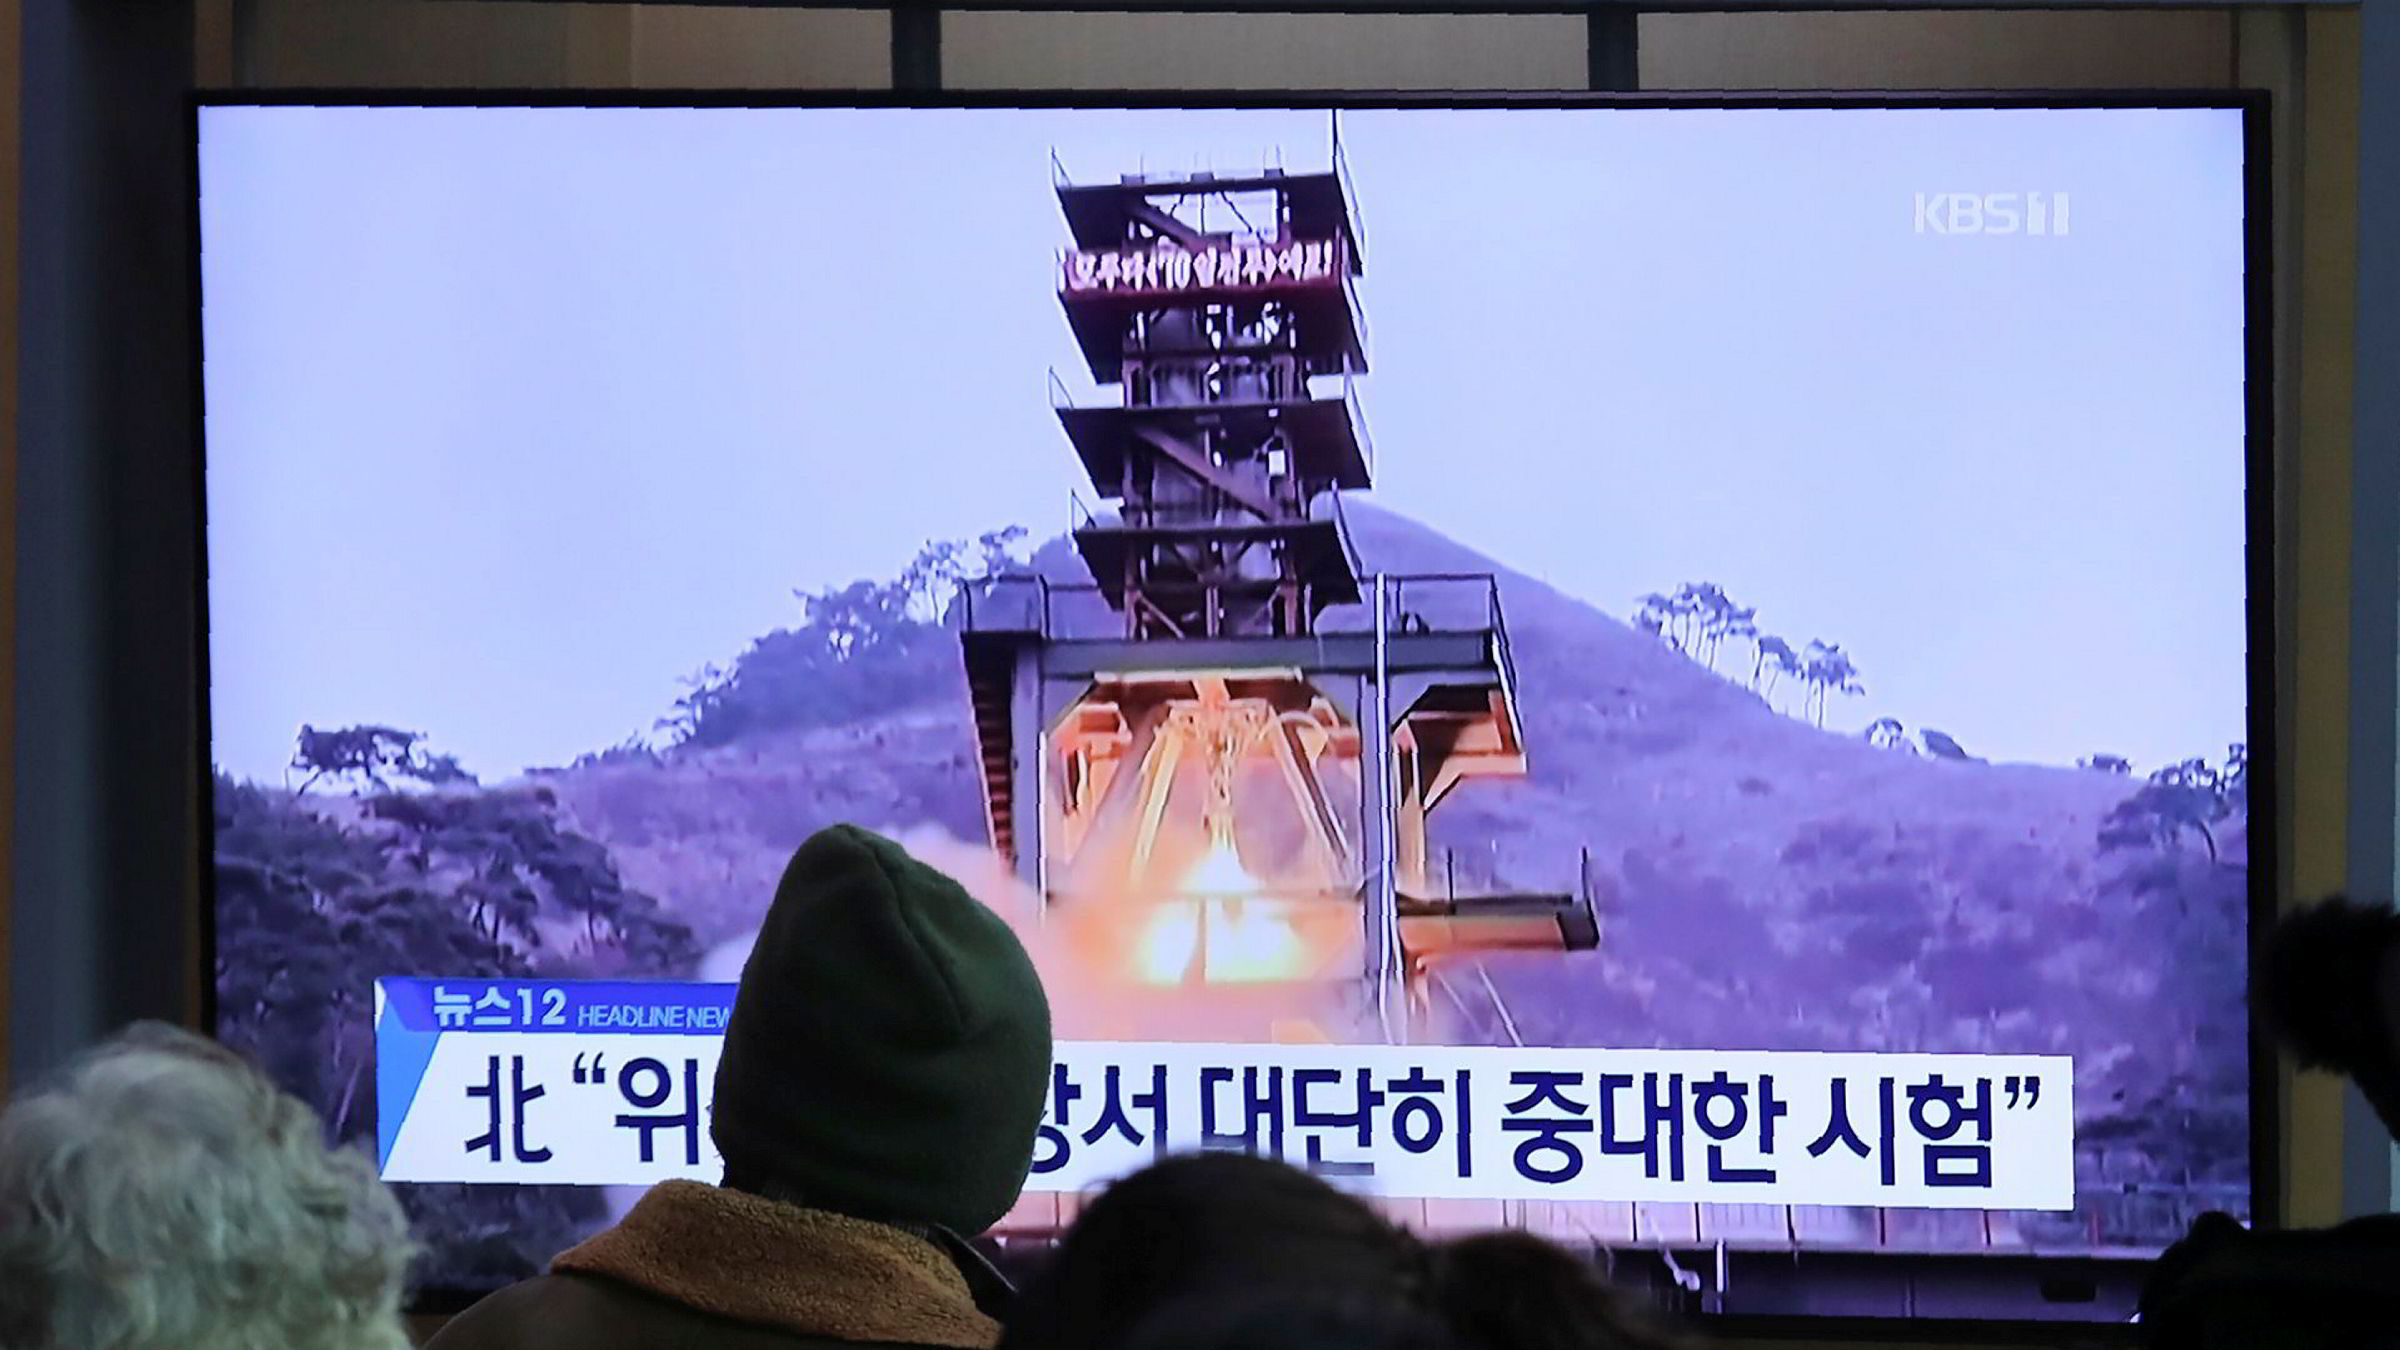 People watch a TV screen showing a file image of a ground test of North Korea's rocket engine during a news program at the Seoul Railway Station in Seoul, South Korea, Monday, Dec. 9, 2019. North Korea said Sunday it carried out a _very important test_ at its long-range rocket launch site that it reportedly rebuilt after having partially dismantled it after entering denuclearization talks with the United States last year. The sign reads: _Very important test._ (AP Photo/Ahn Young-joon)